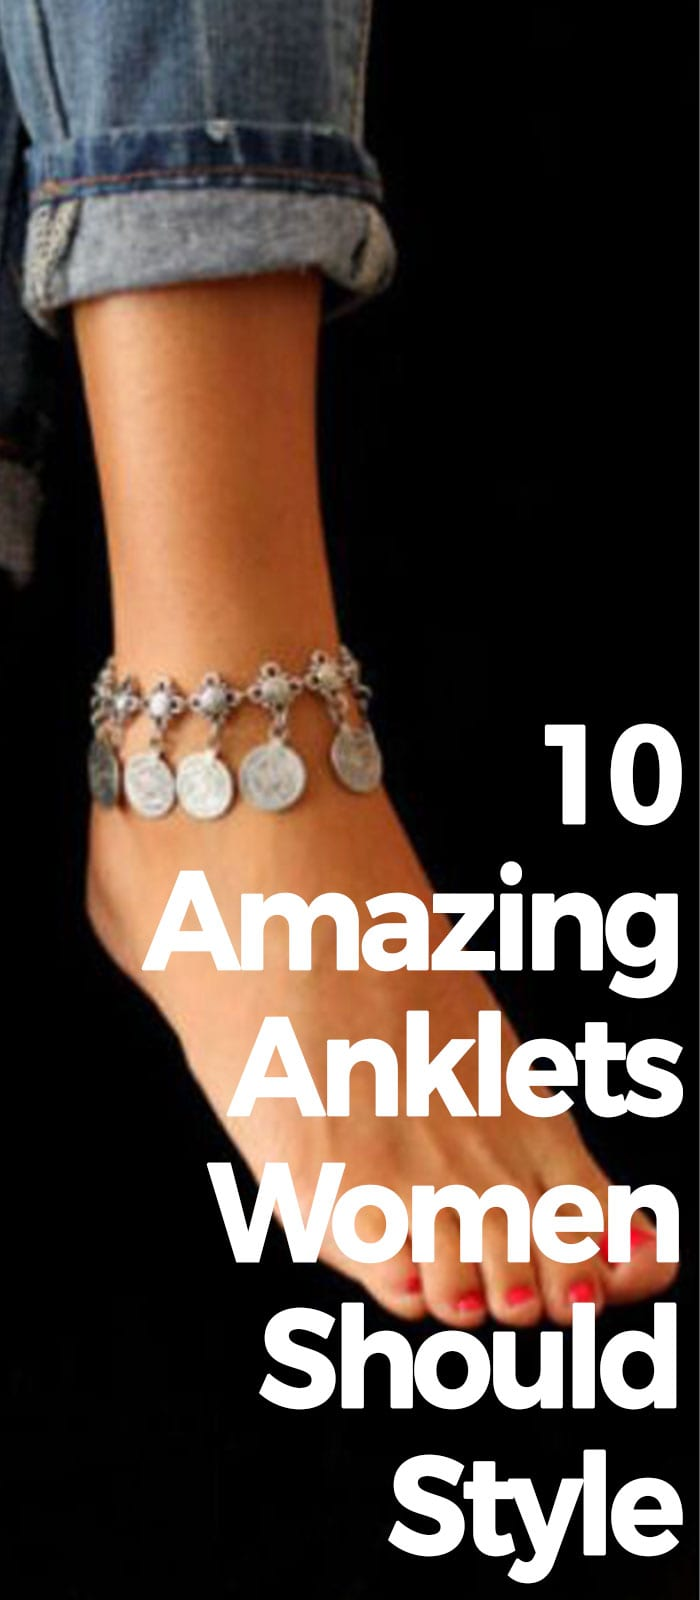 10 Amazing Anklet Women Should Style